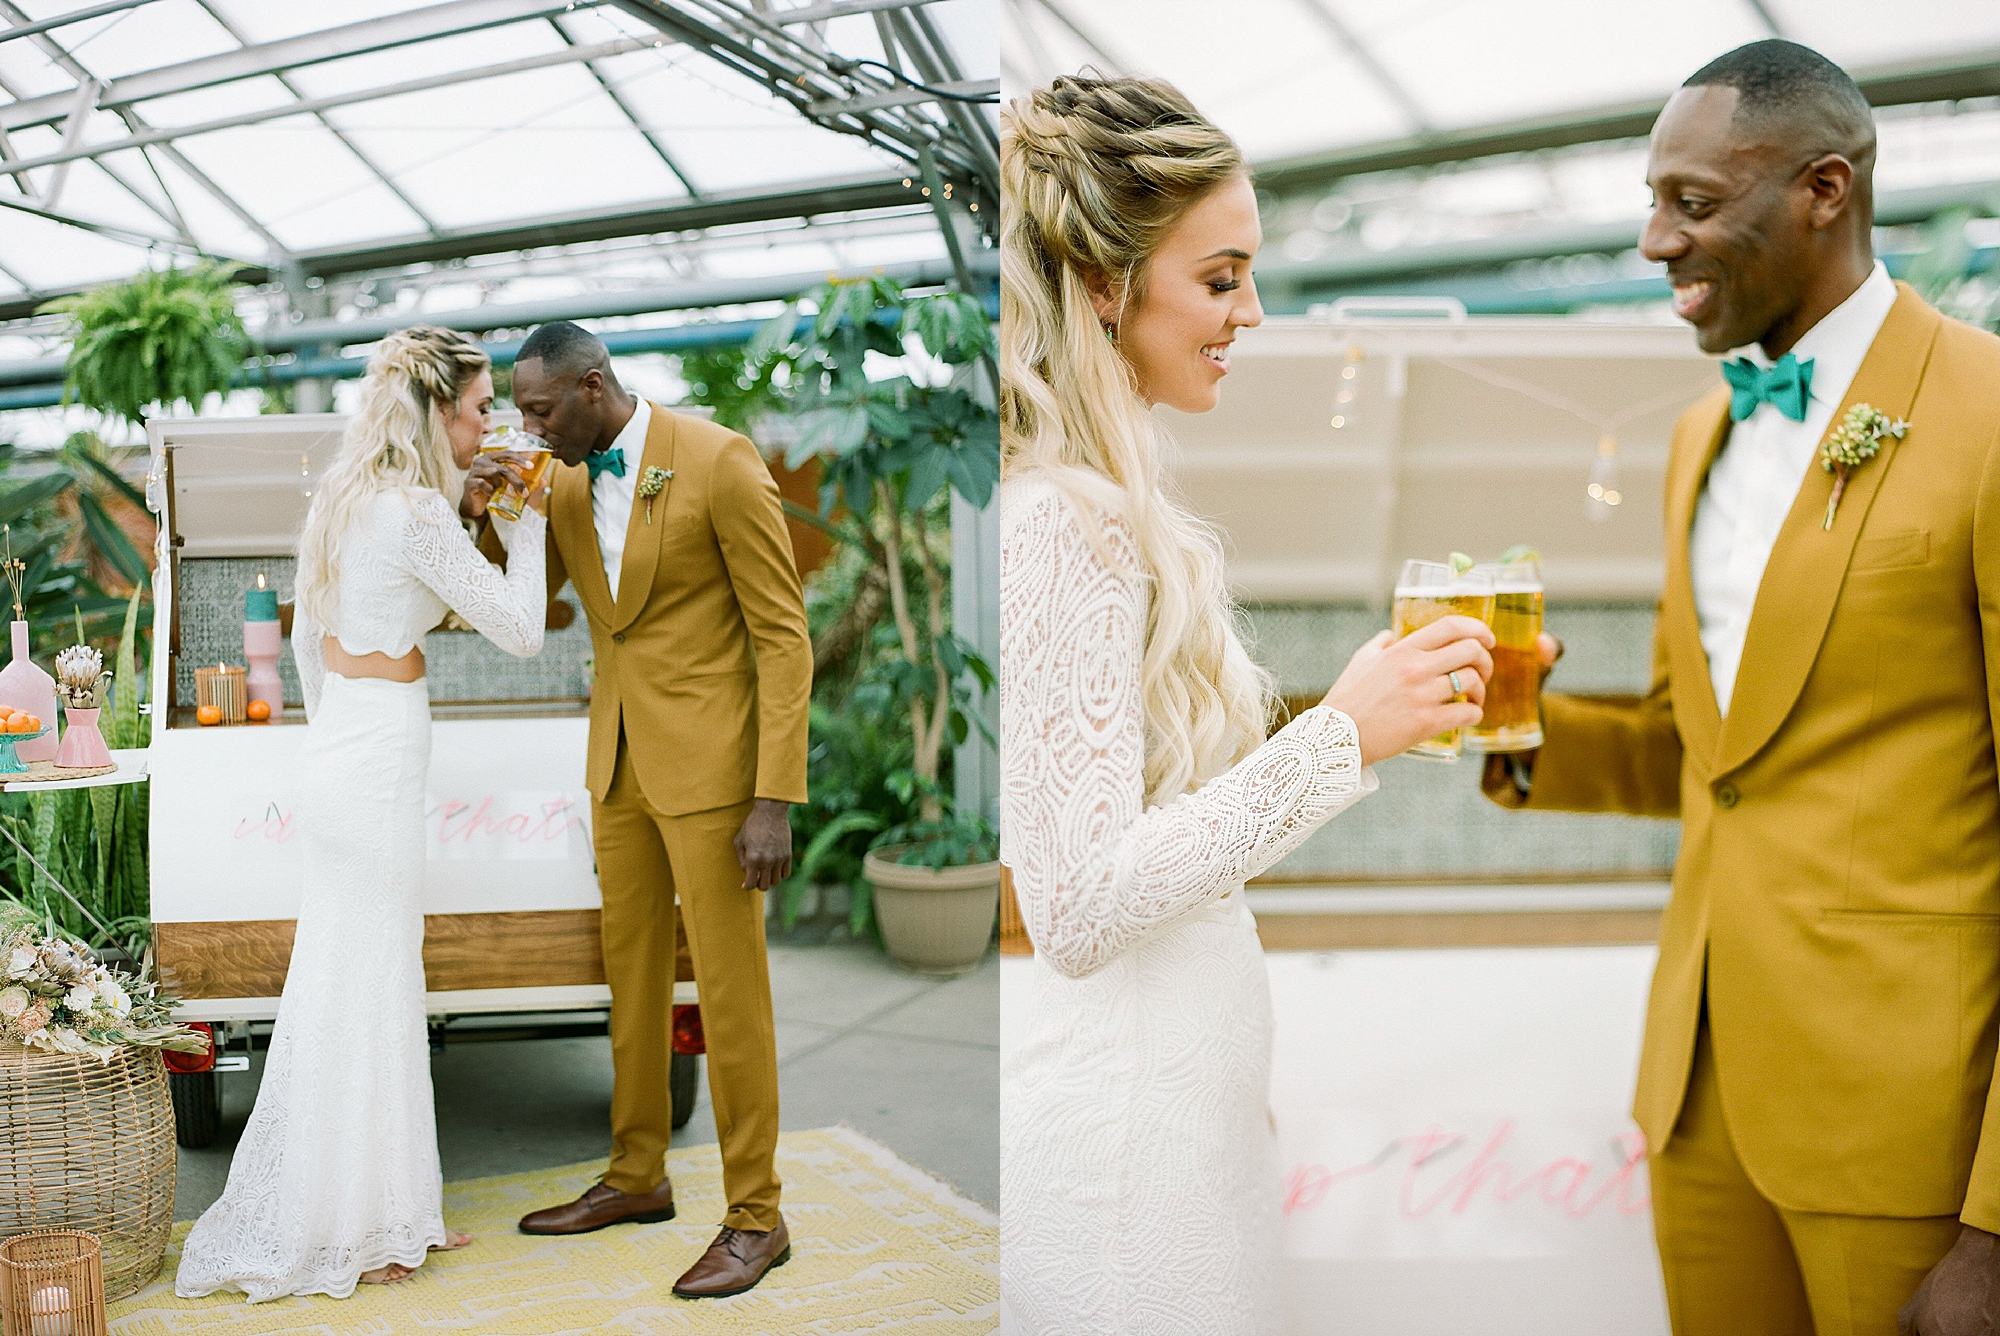 Colorful and Vibrant Wedding Photography at Fairmount Horticultural Center by Magdalena Studios 0020